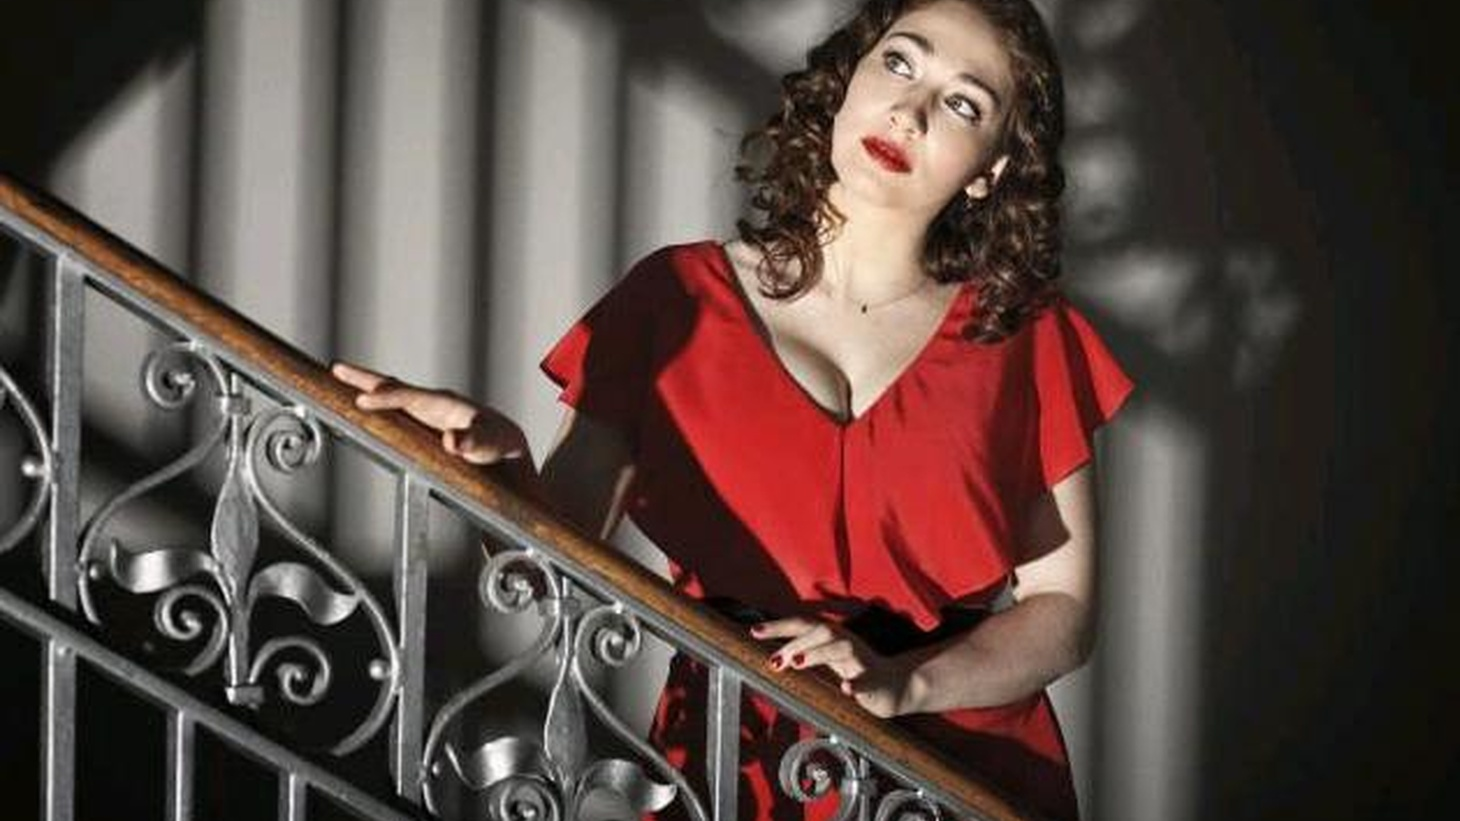 …from Far.   Russian-born, New York City-raised Regina Spektor is a classically trained pianist and songwriter whose personal musings are both whimsical and thought provoking...